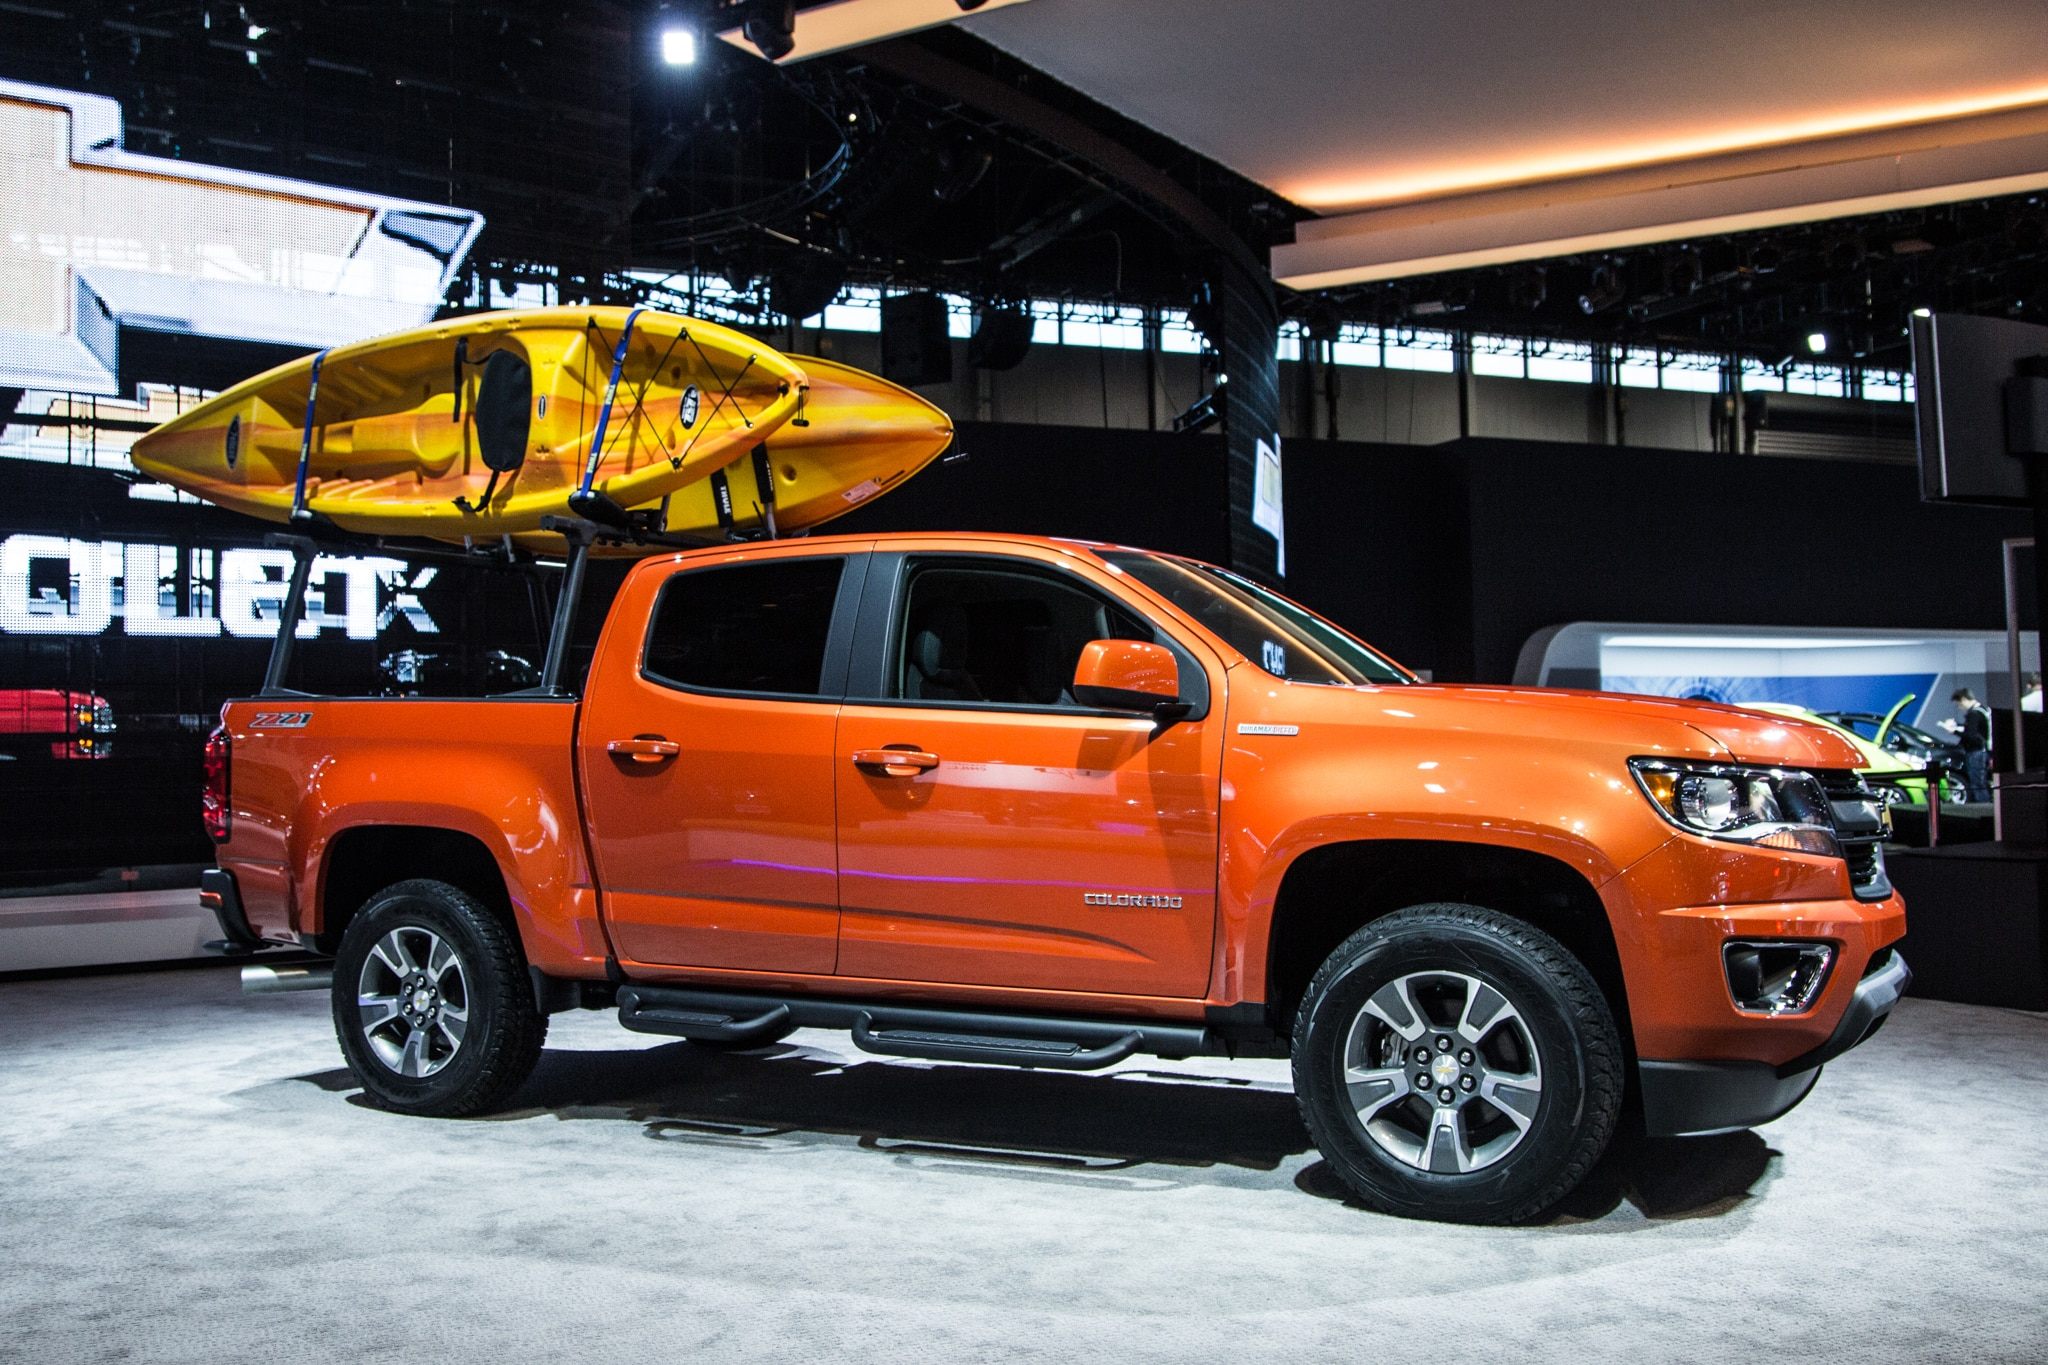 2015 chevrolet colorado and 2015 gmc canyon review. Black Bedroom Furniture Sets. Home Design Ideas